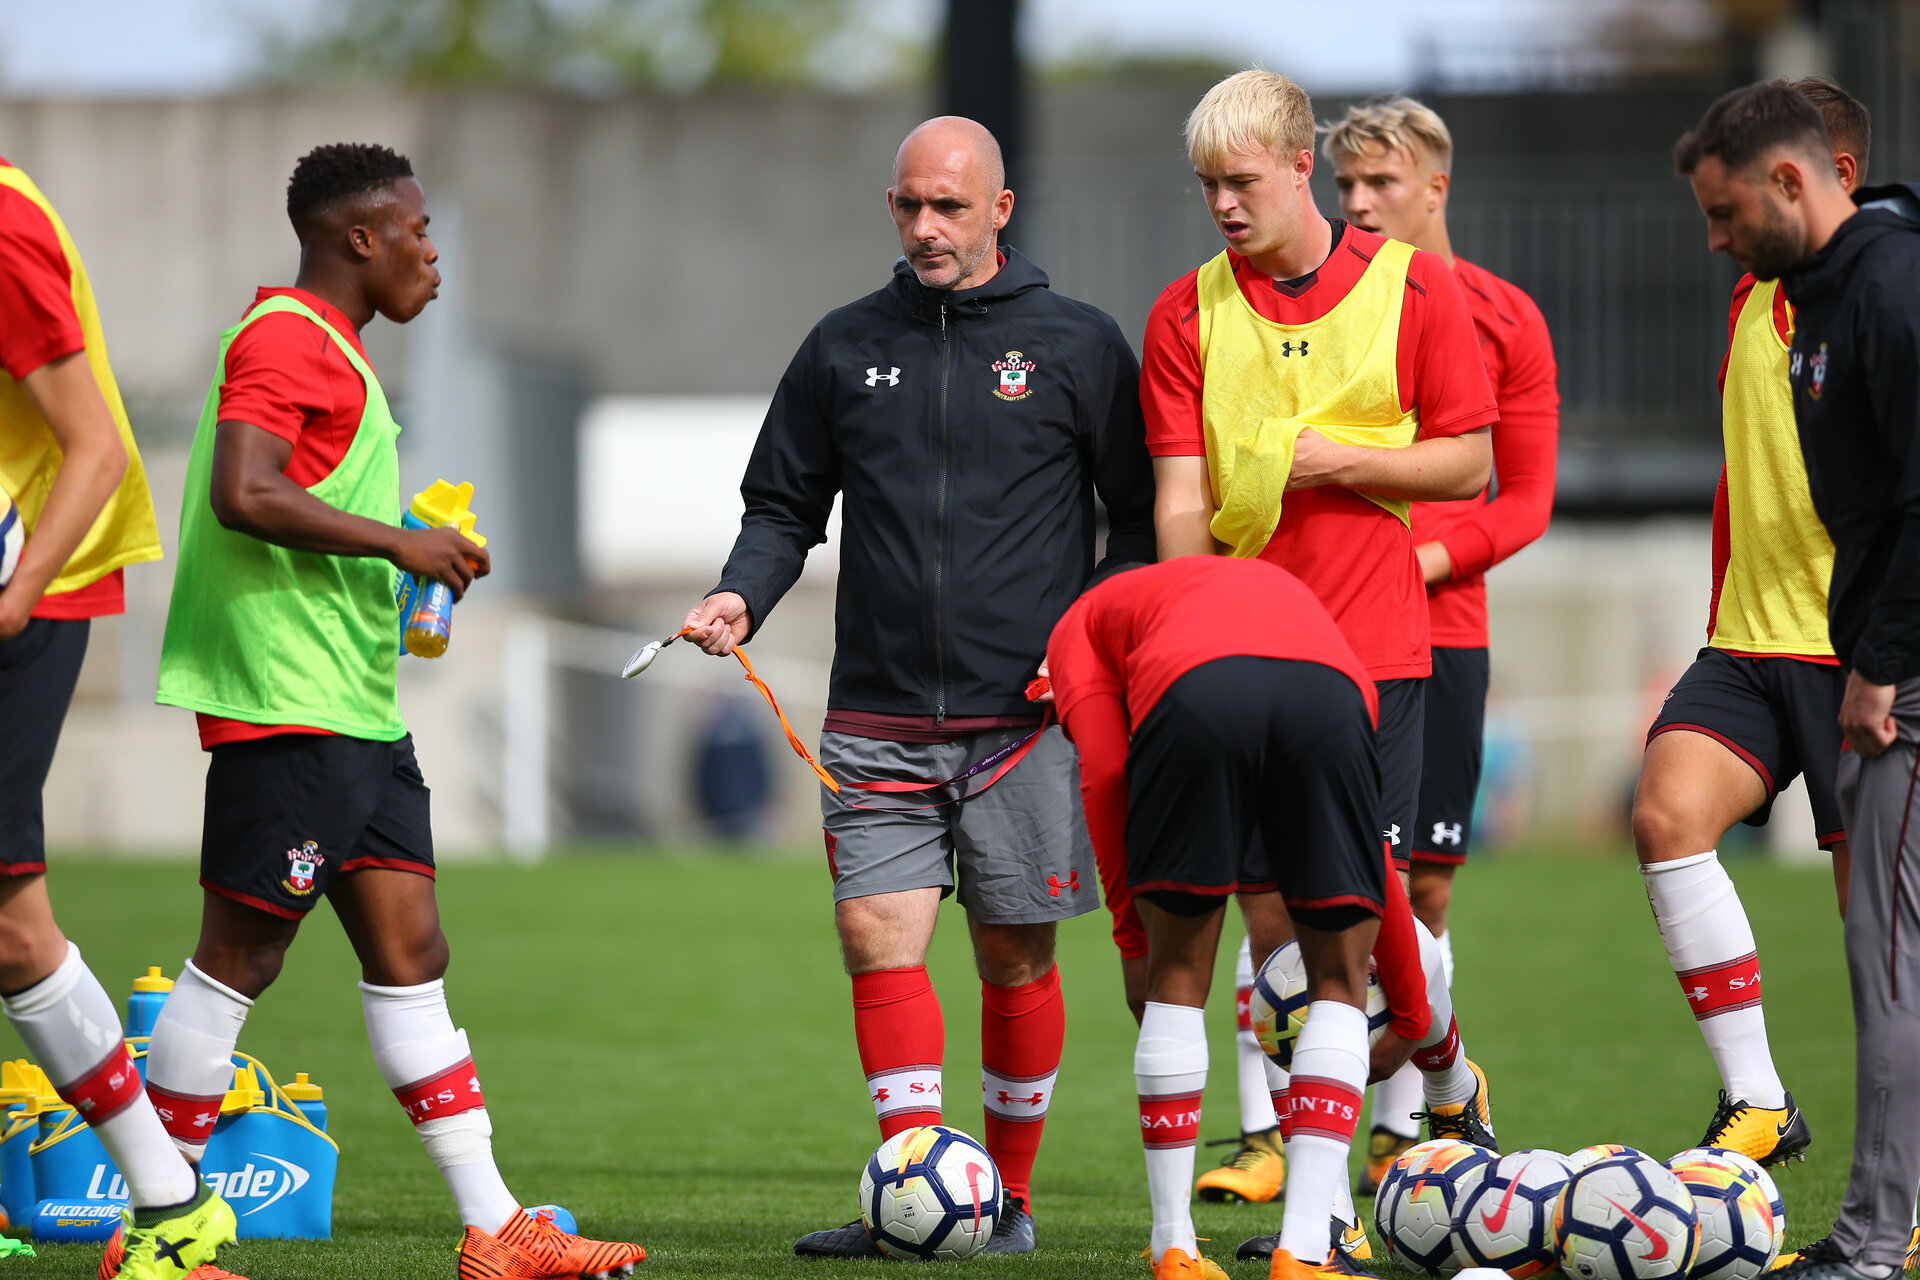 SOUTHAMPTON, ENGLAND - SEPTEMBER 30: Southampton U18Õs Coach Craig Fleming prepares with the team ahead of the Under 18's Premier League match between Southampton FC and Swansea at Staplewood Training Ground on September 30, 2017 in Southampton, England. (Photo by James Bridle - Southampton FC/Southampton FC via Getty Images) SOUTHAMPTON, ENGLAND - SEPTEMBER 30: Southampton U18's Coach Craig Fleming prepares with the team ahead of the Under 18's Premier League match between Southampton FC and Swansea at Staplewood Training Ground on September 30, 2017 in Southampton, England. (Photo by James Bridle - Southampton FC/Southampton FC via Getty Images)